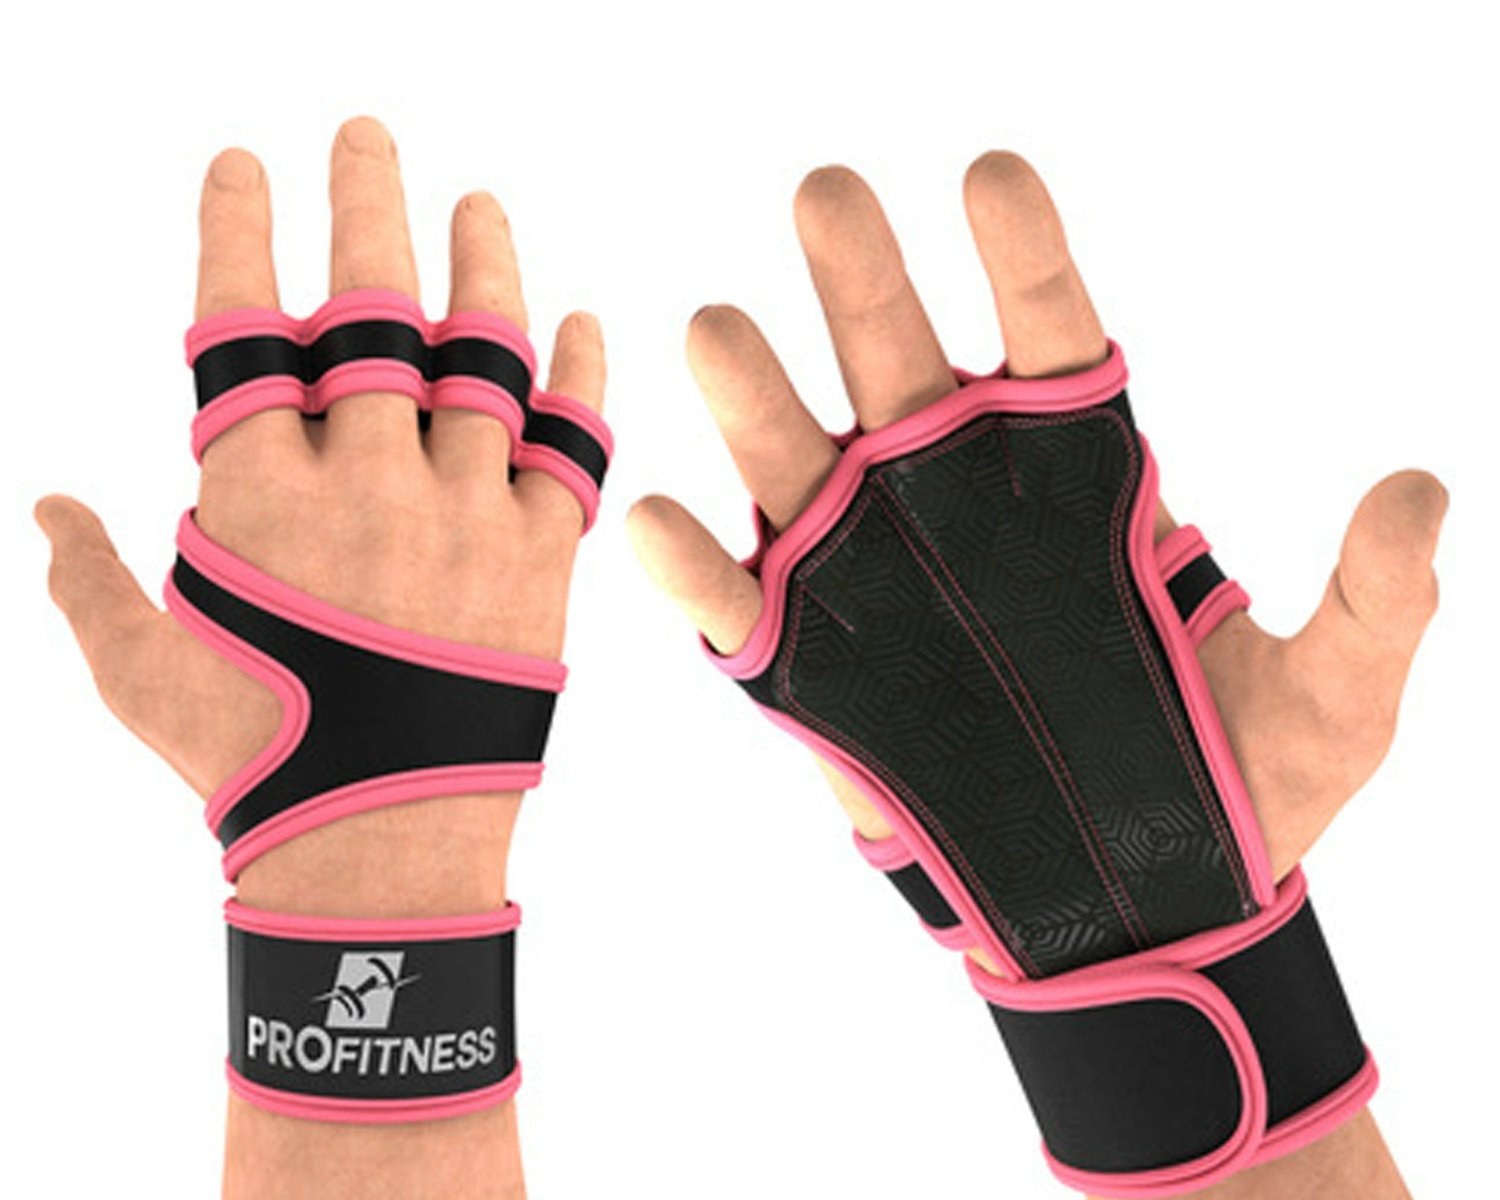 ProFitness Cross Training Gloves with Wrist Support by Non-Slip Palm  Silicone Padding to Avoid